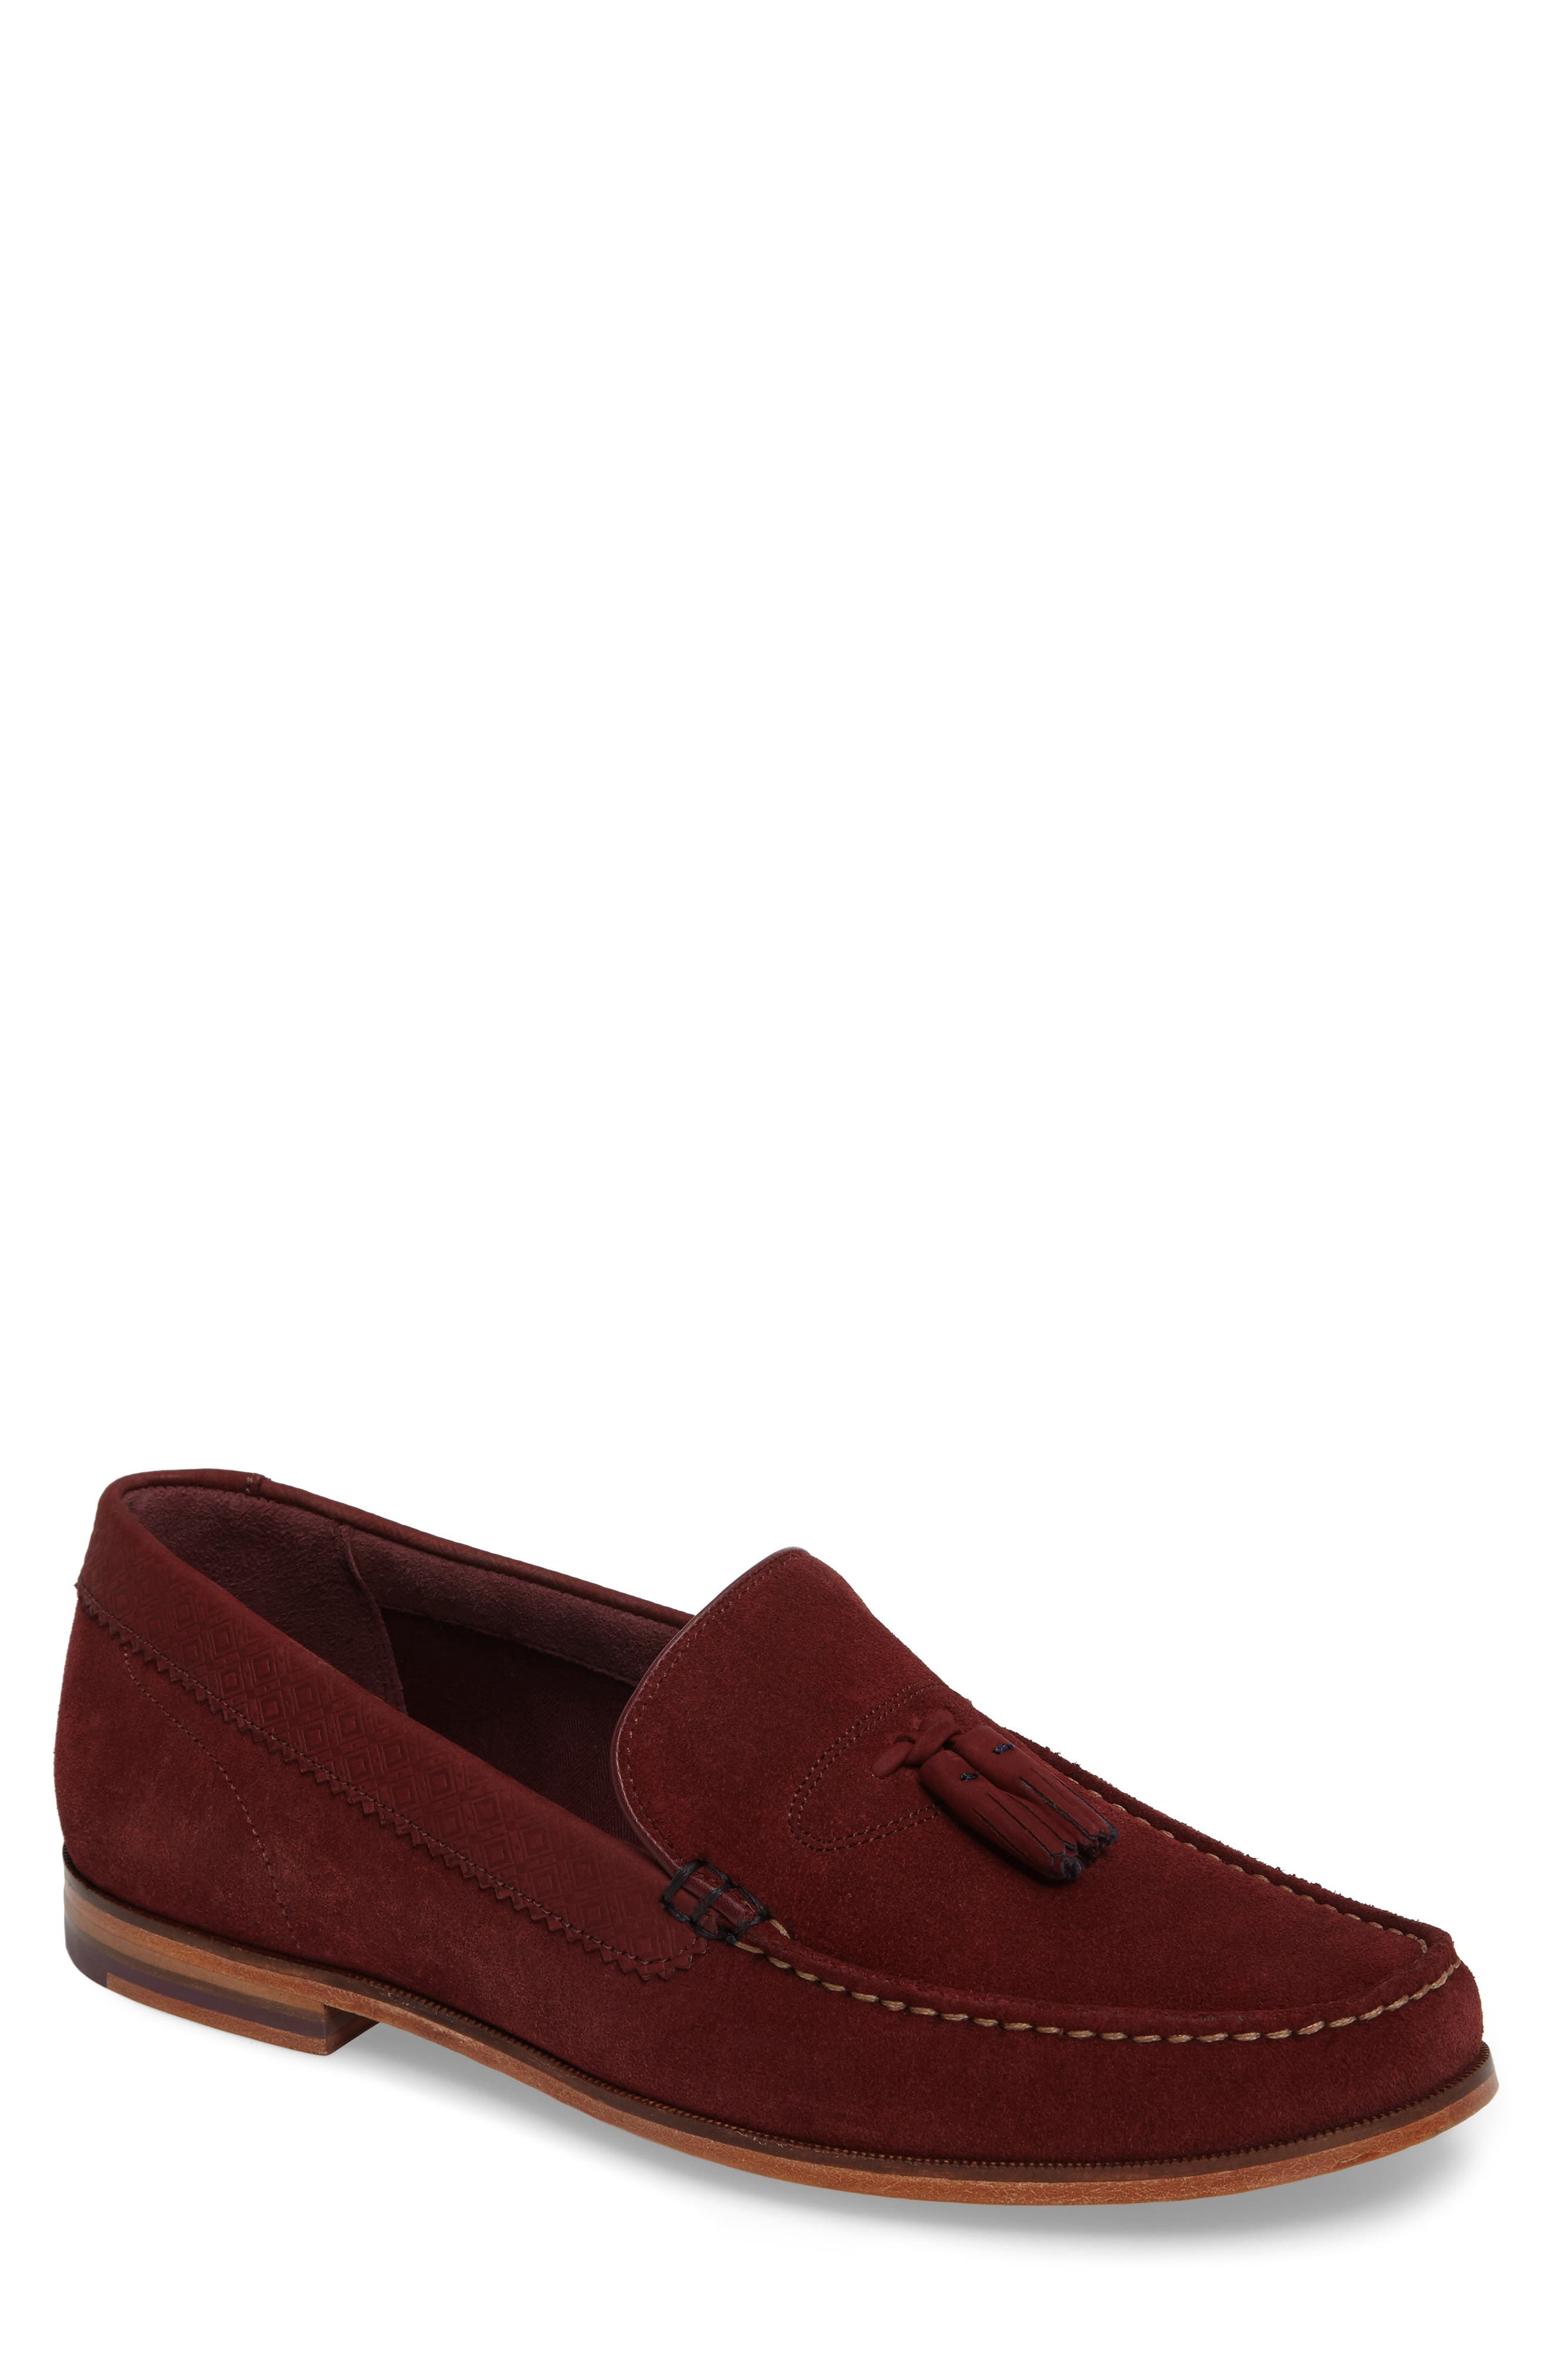 Dougge Tassel Loafer,                             Main thumbnail 5, color,